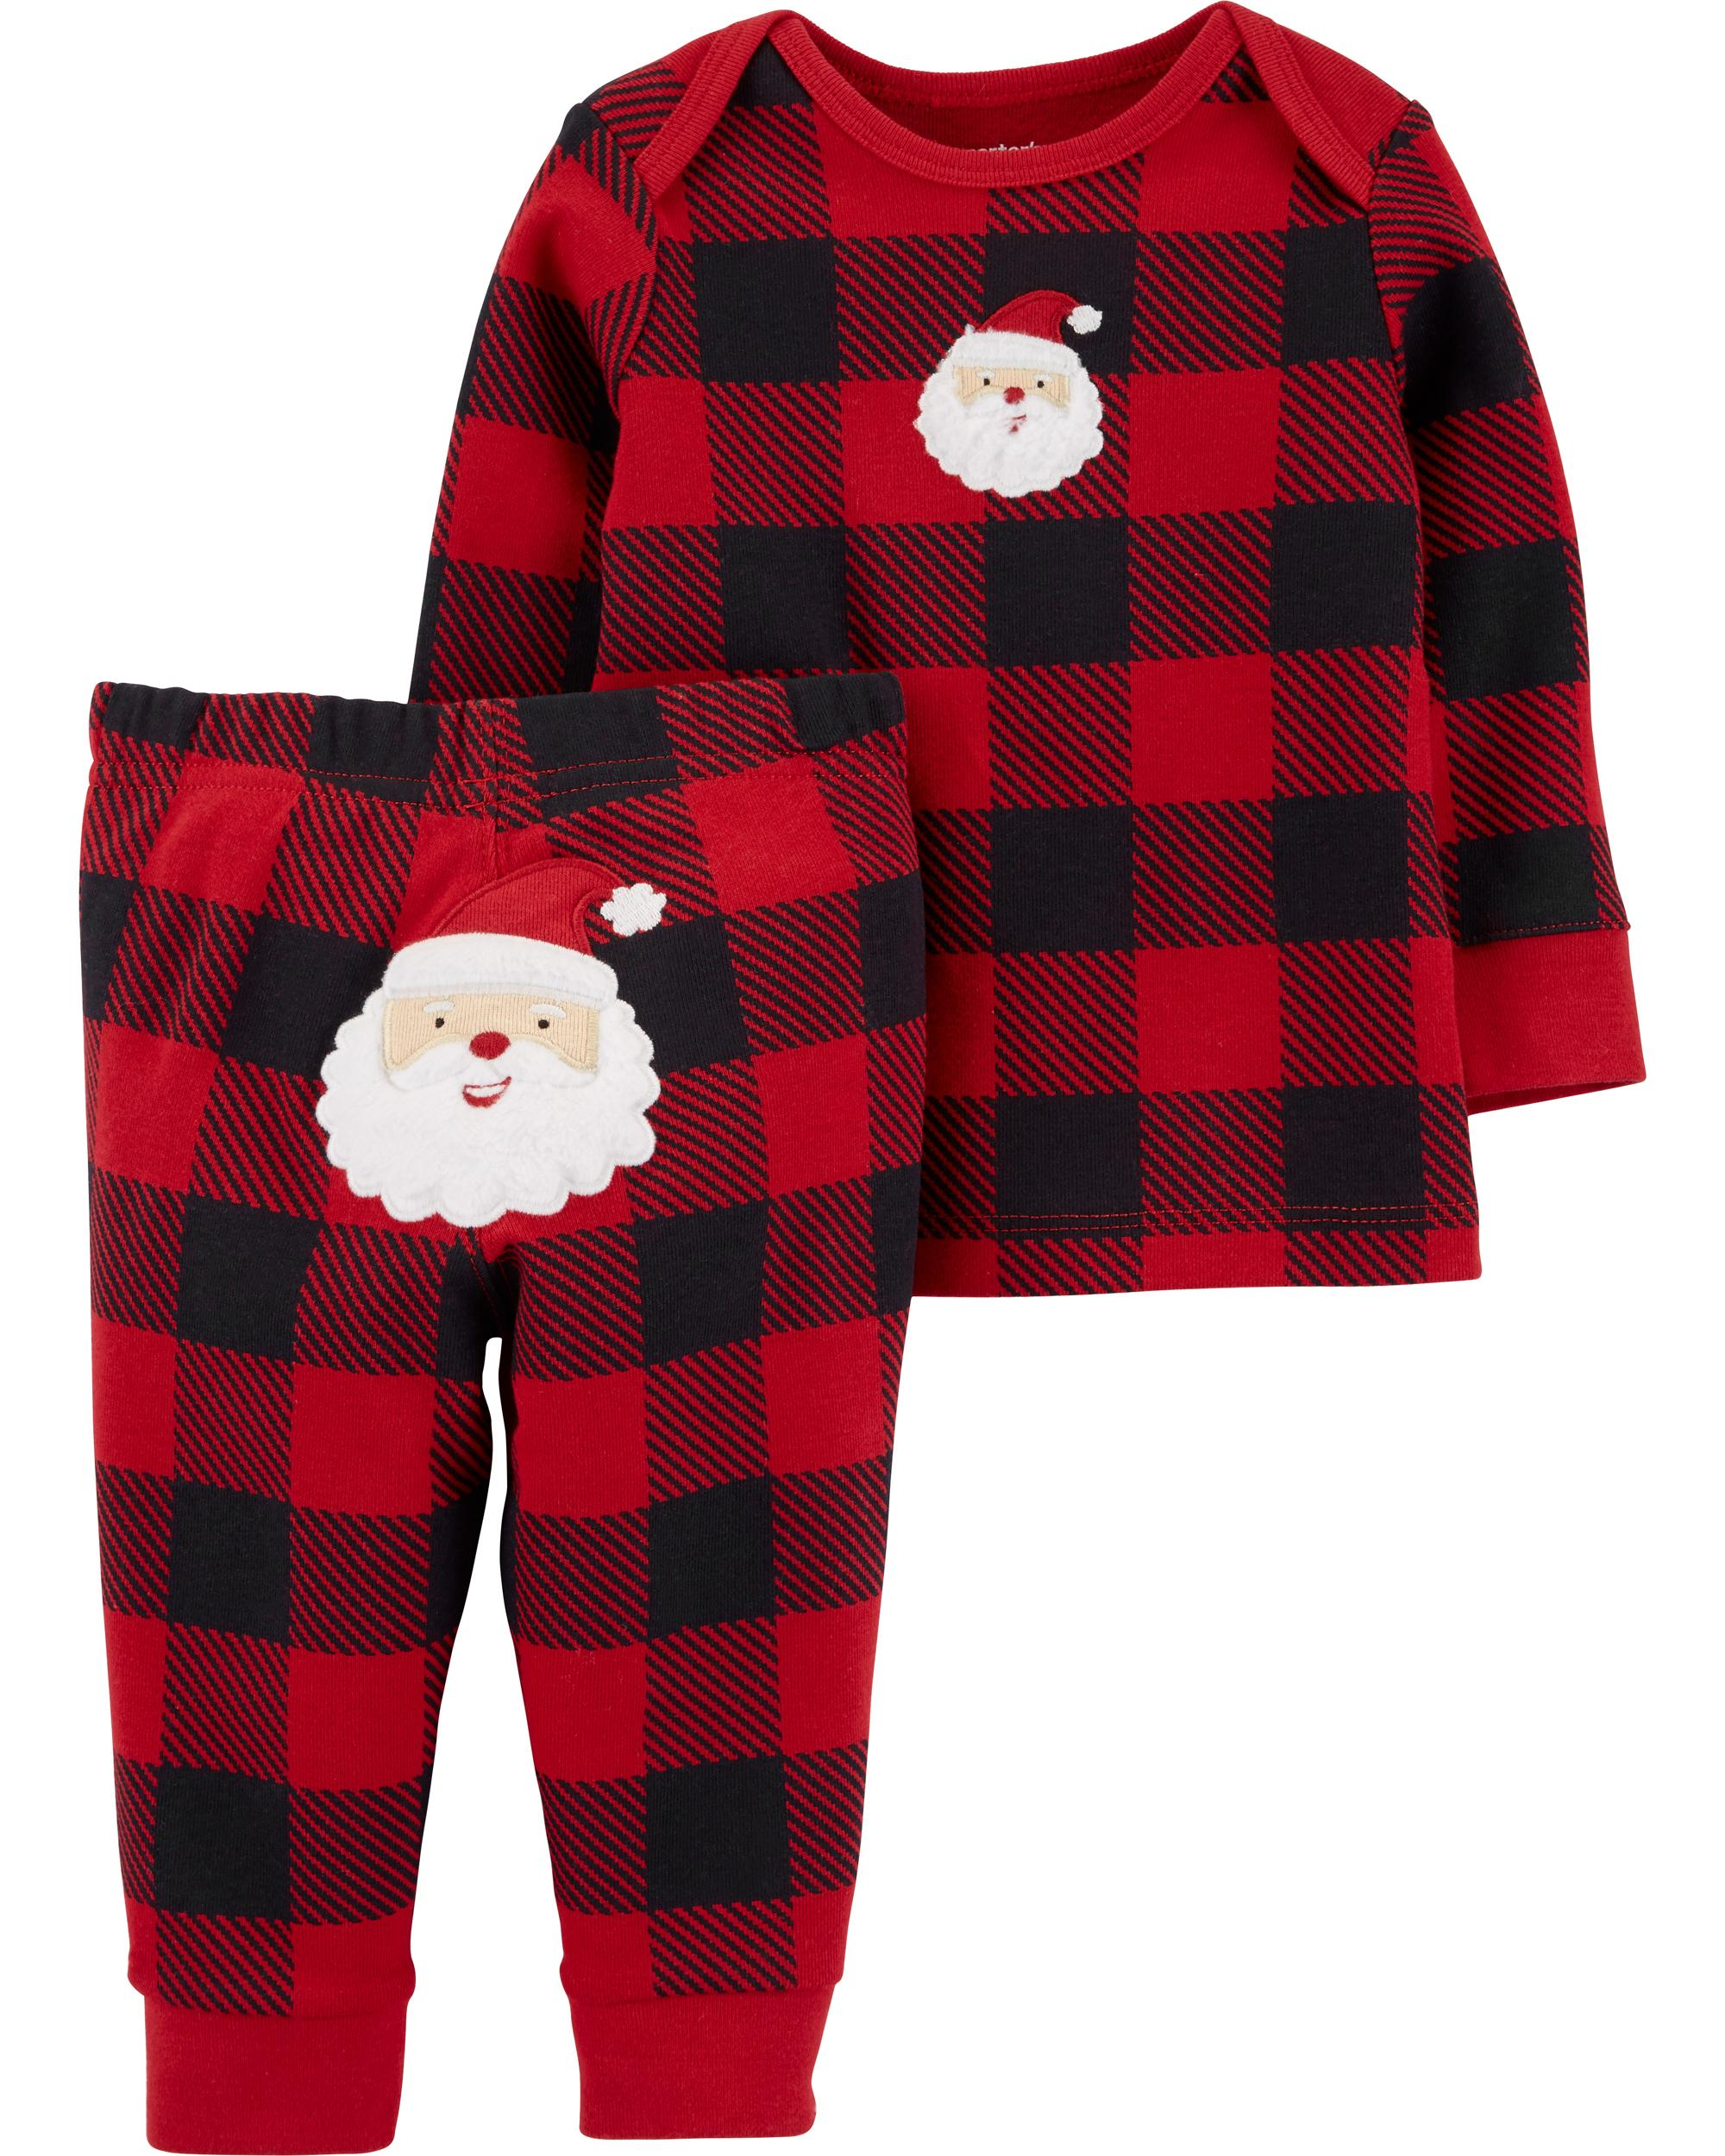 Santa/'s Christmas Elf 4 Piece Baby Clothing Outfit 4 Preemie and Newborn Sizes